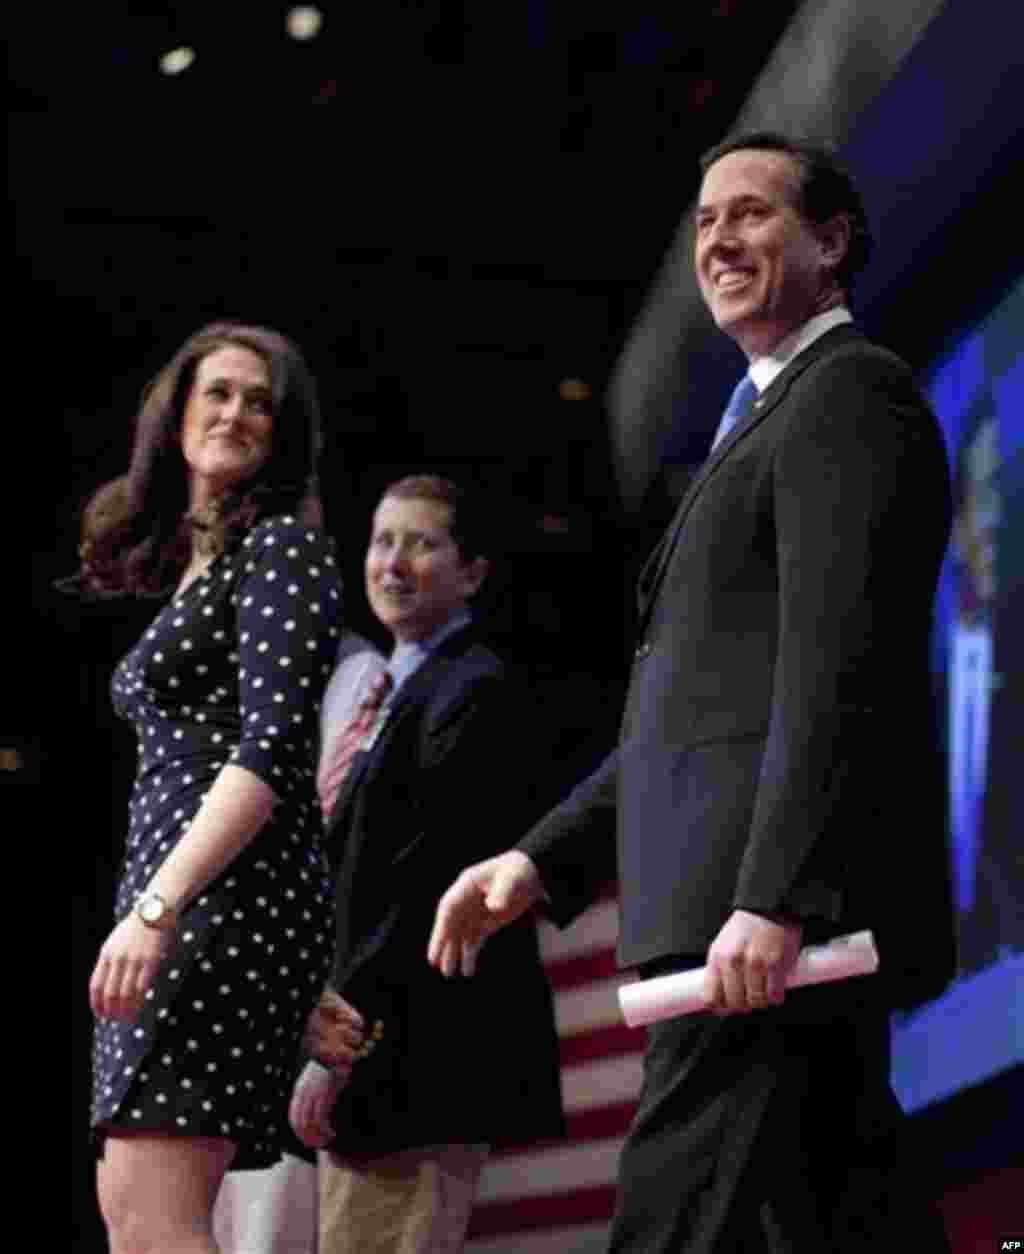 Republican presidential candidate, former Pennsylvania Sen. Rick Santorum arrives to speak at the Conservative Political Action Conference, Friday, Feb. 10, 2012, in Washington. (AP Photo/Evan Vucci)